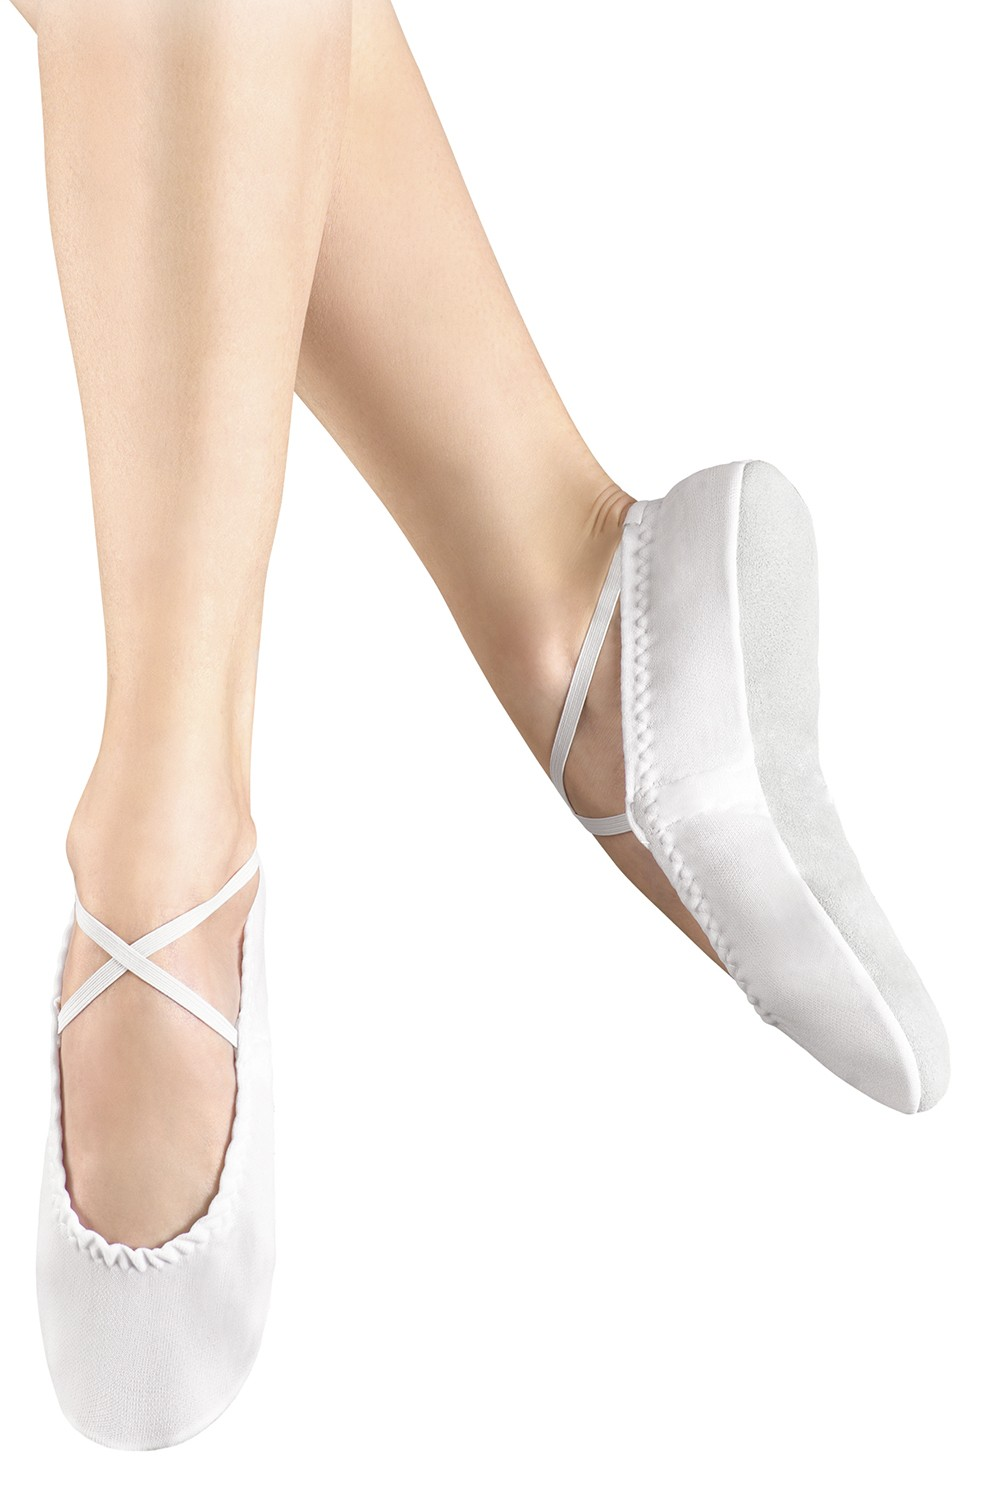 Criss Cross Sockette Women's Ballet Shoes